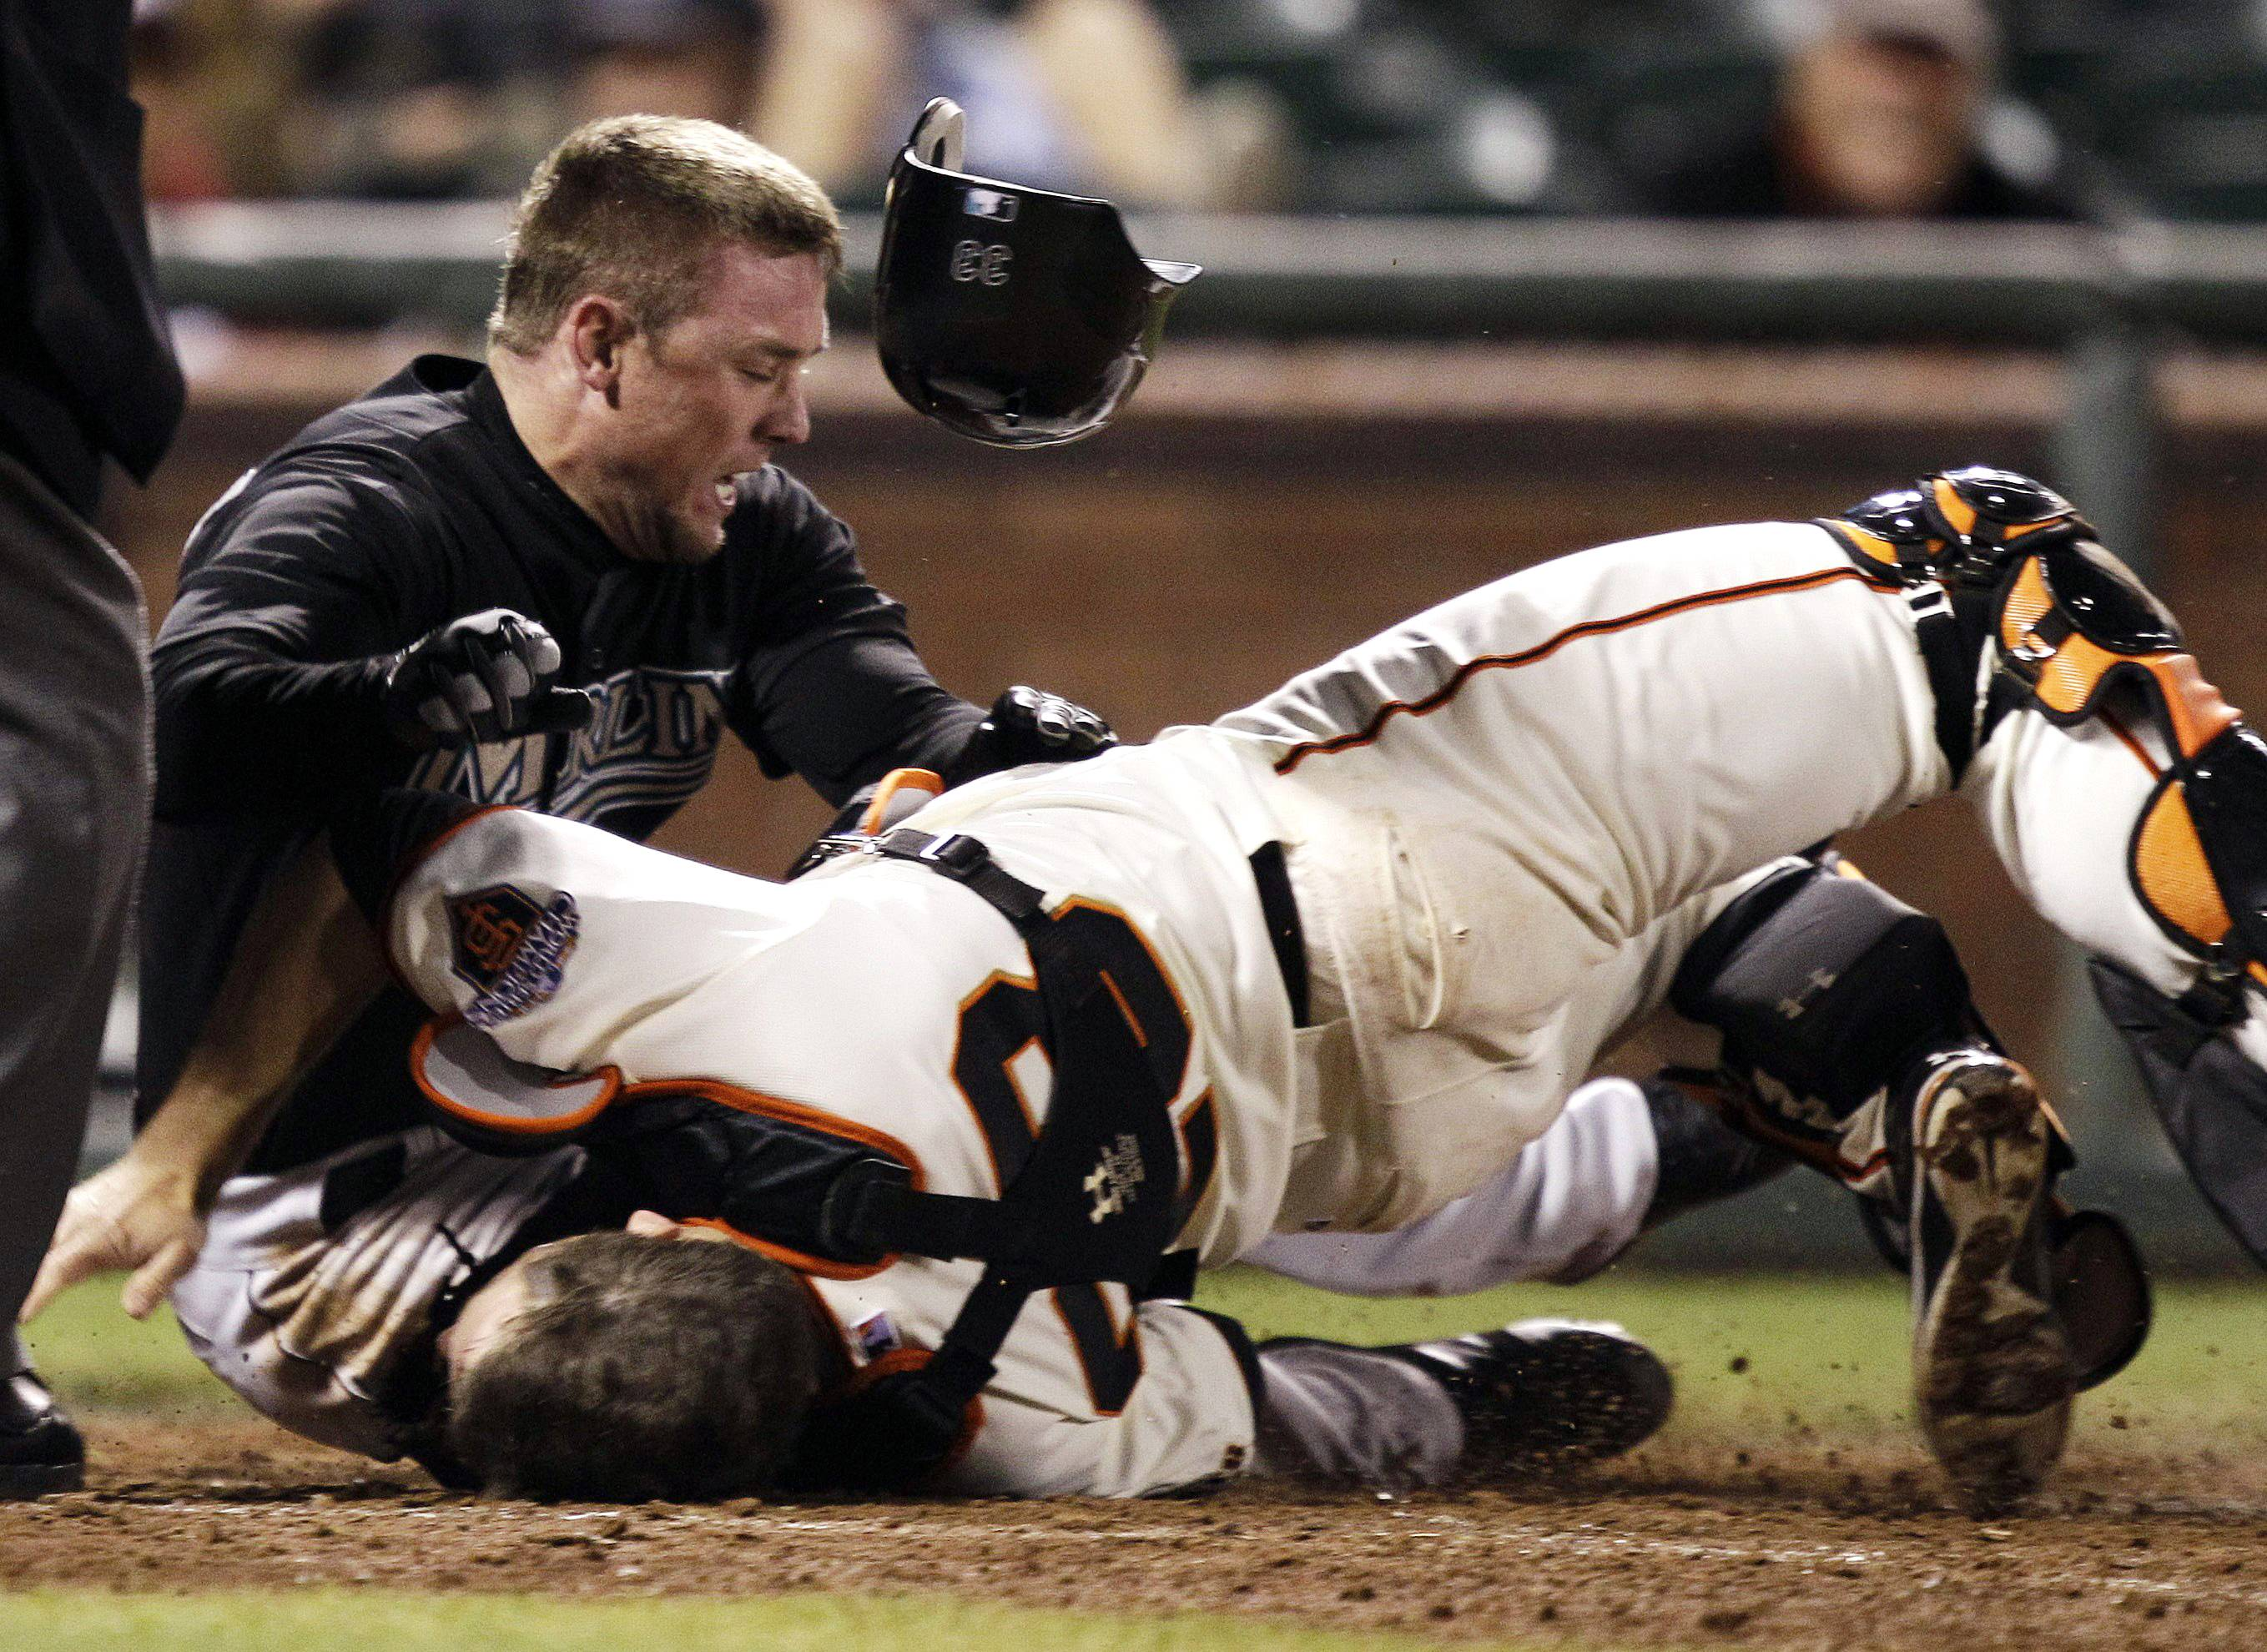 In this May 25, 2011 file photo, Florida Marlins' Scott Cousins, top, collides with San Francisco Giants catcher Buster Posey on a fly ball during the 12th inning of a baseball game in San Francisco. Cousins was safe for the go ahead run. A new rule, 7.13, was adopted by MLB and the players' association on a one-year experimental basis, the sides said Monday. The umpire crew chief can use the new video-review system to determine whether the rule was violated.